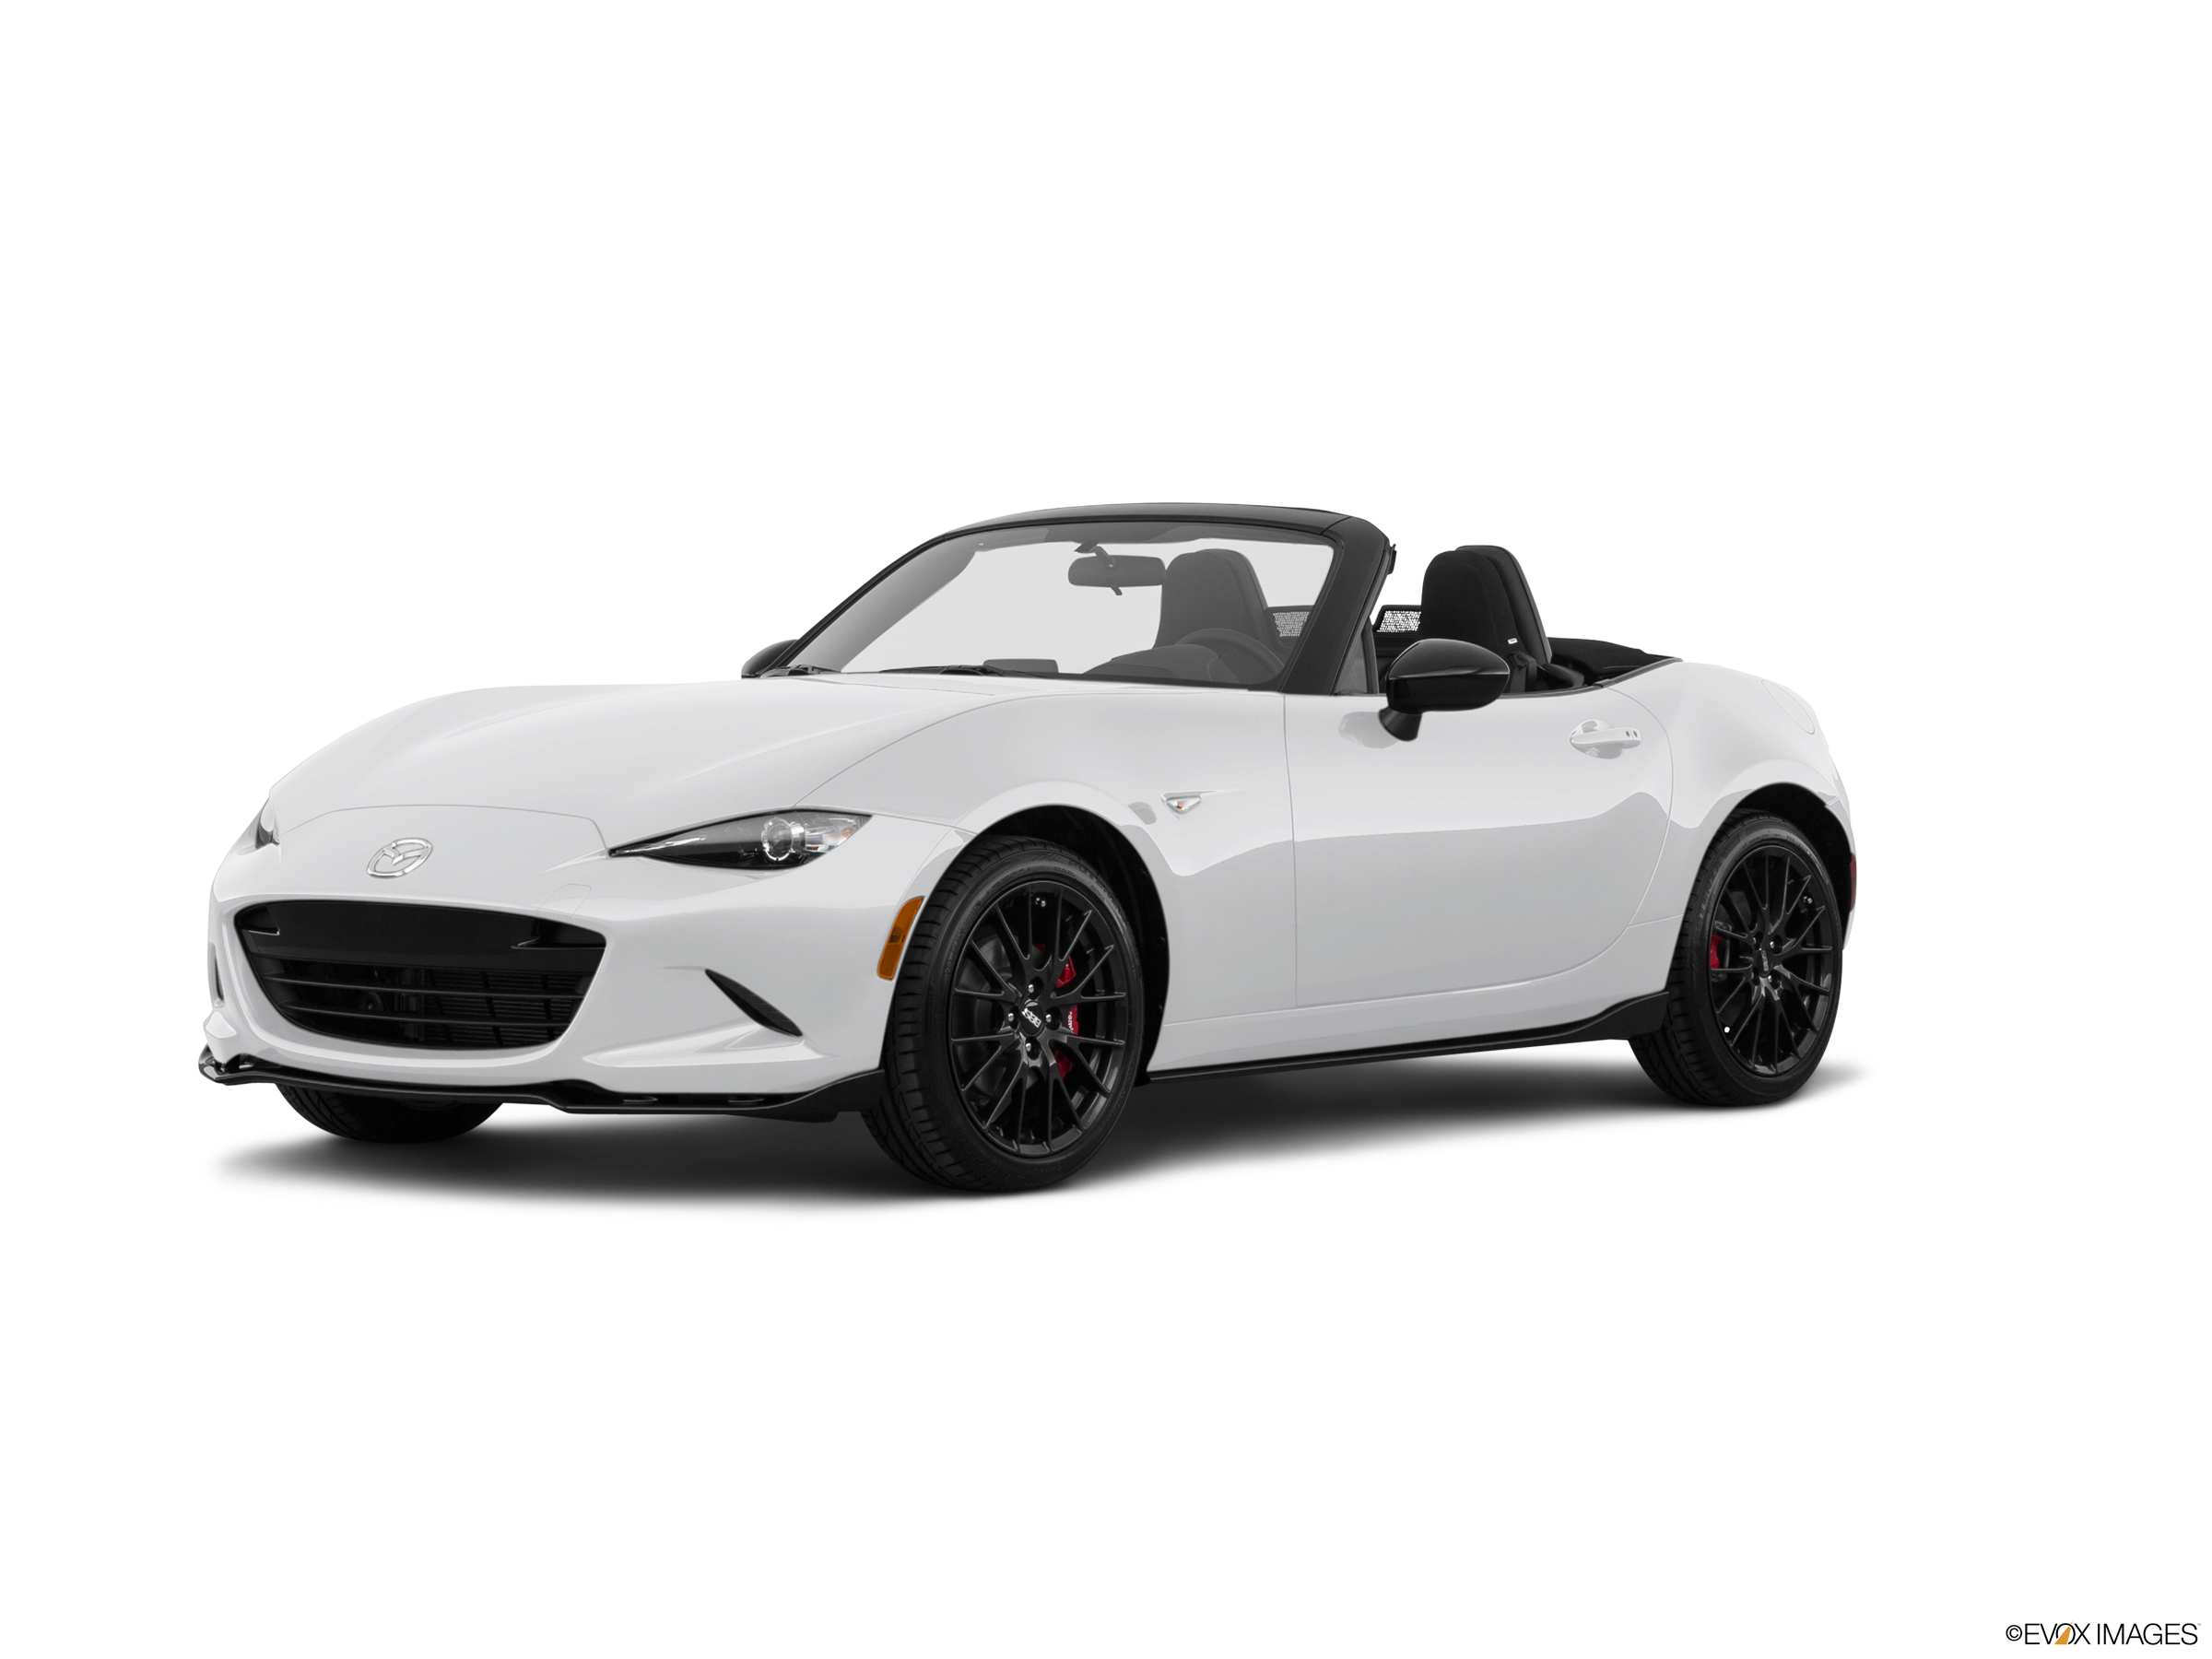 Most Fuel Efficient Convertibles of 2017 - 2017 Mazda MX-5 Miata